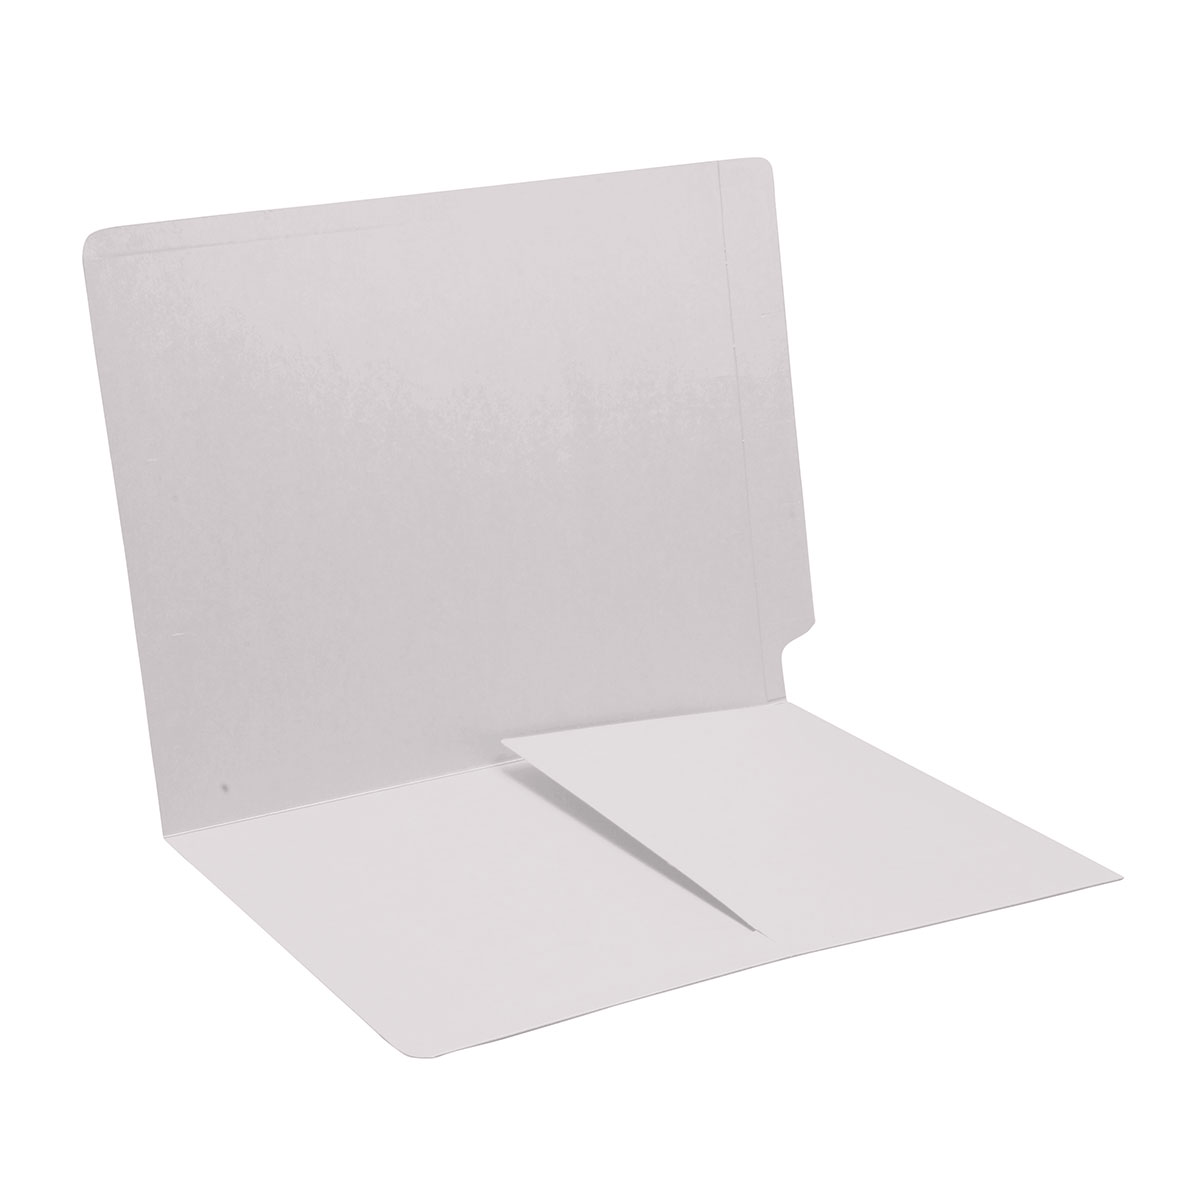 S-9007-WHT - 11 pt White Folders, Full Cut End Tab, Letter Size, 1/2 Pocket Inside Front (Box of 50)